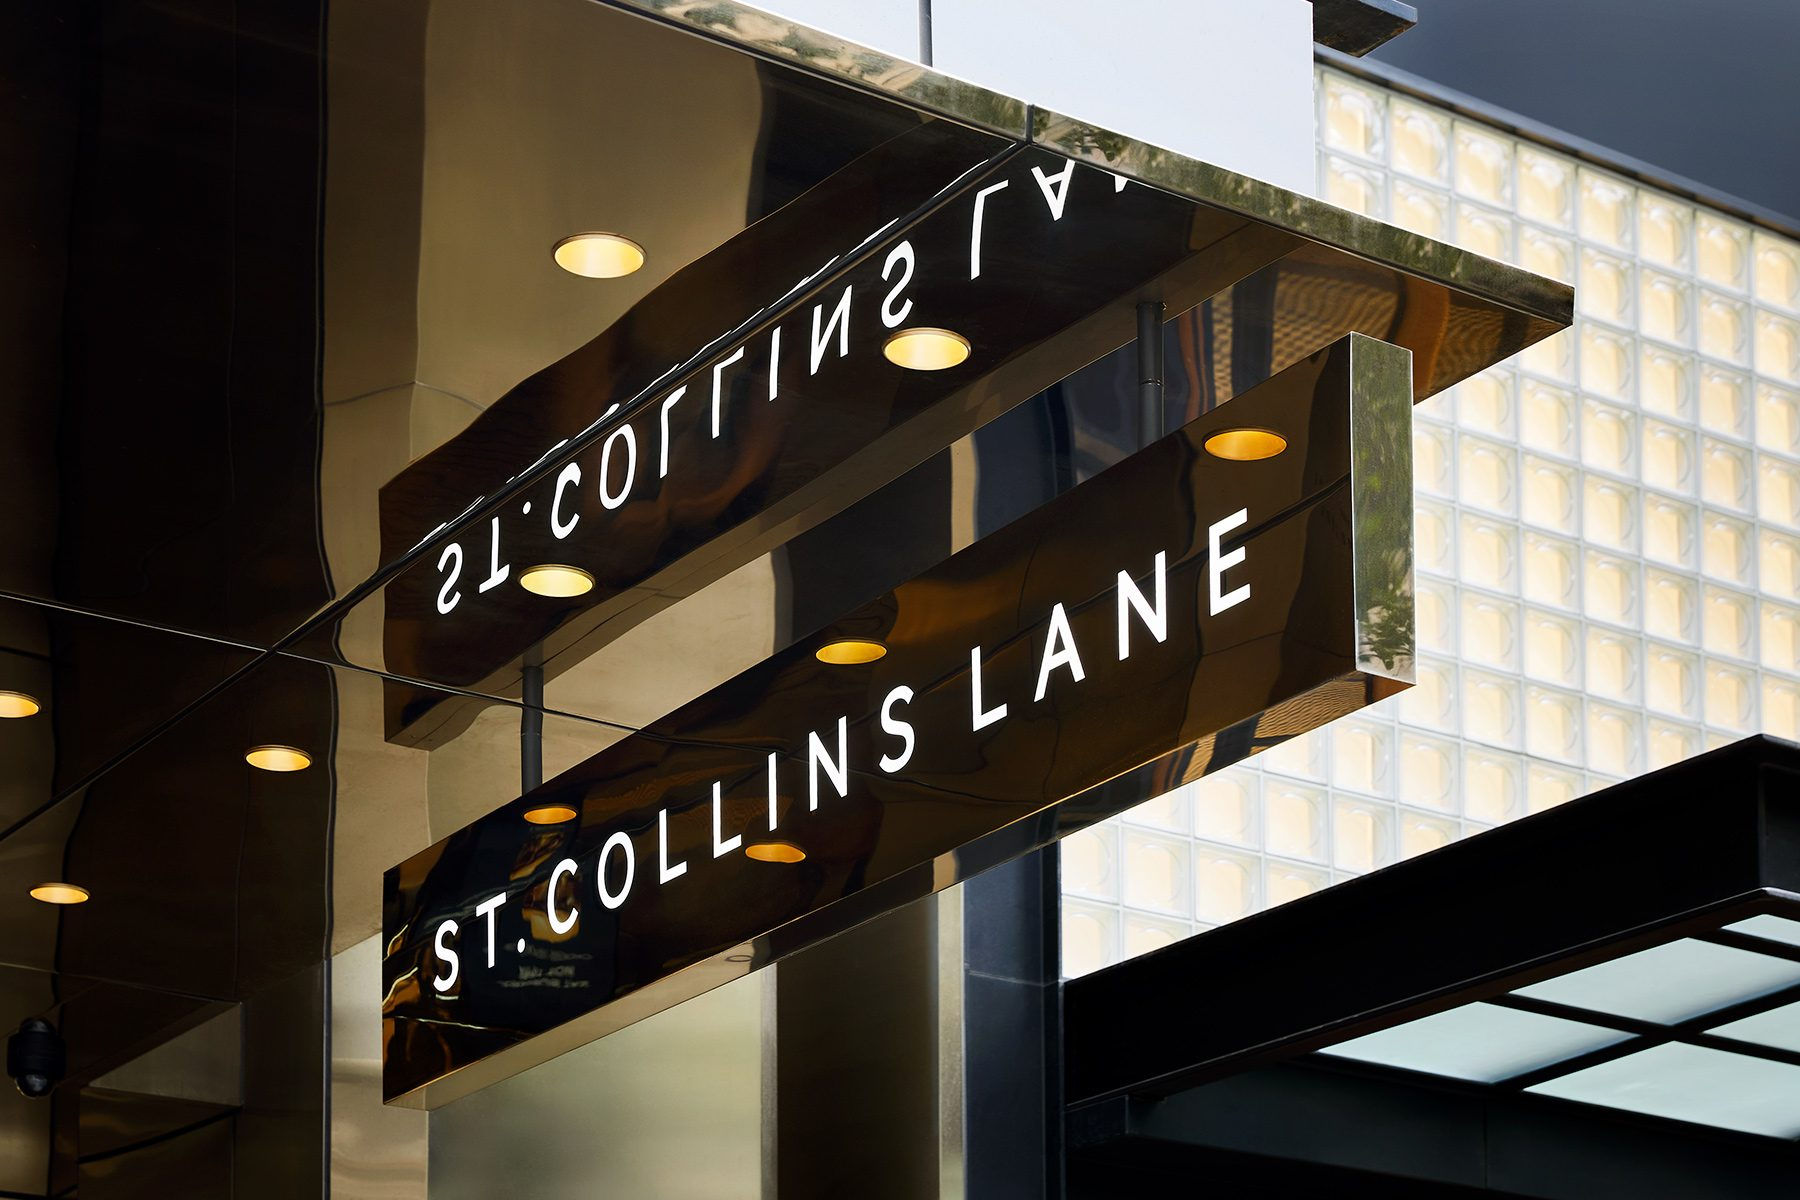 Collaboration with Right Angle Studio – St. Collins Lane – signage and wayfinding